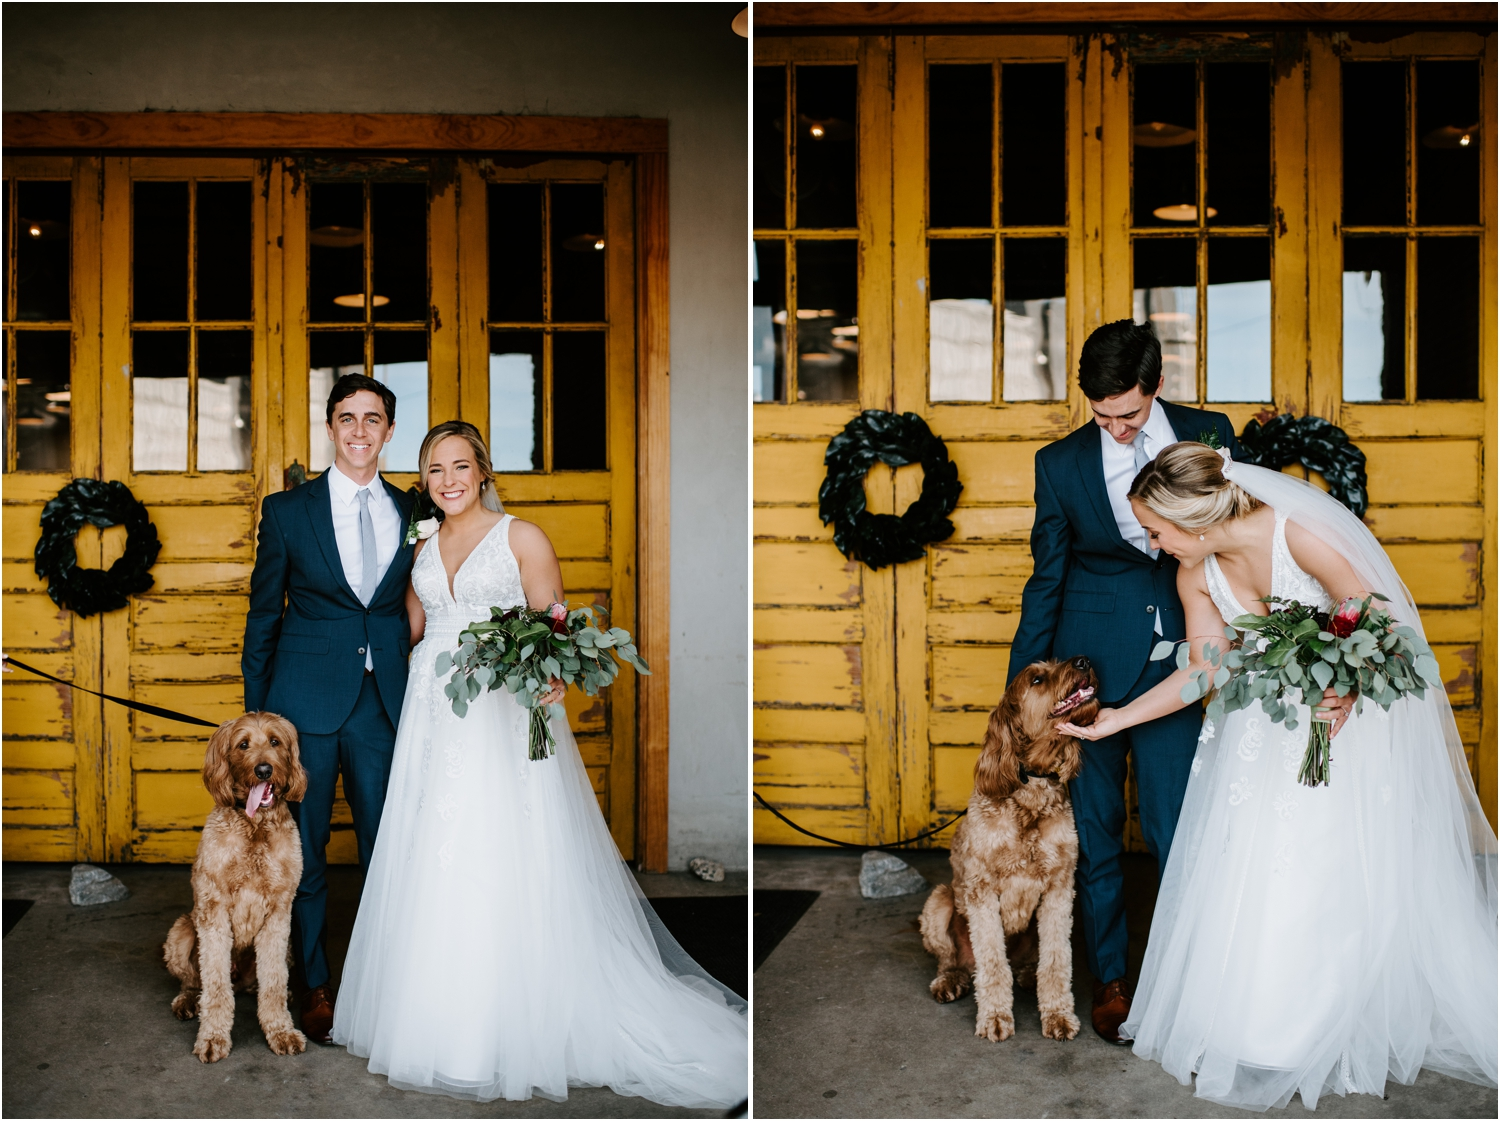 golden doodle with bride and groom at wedding